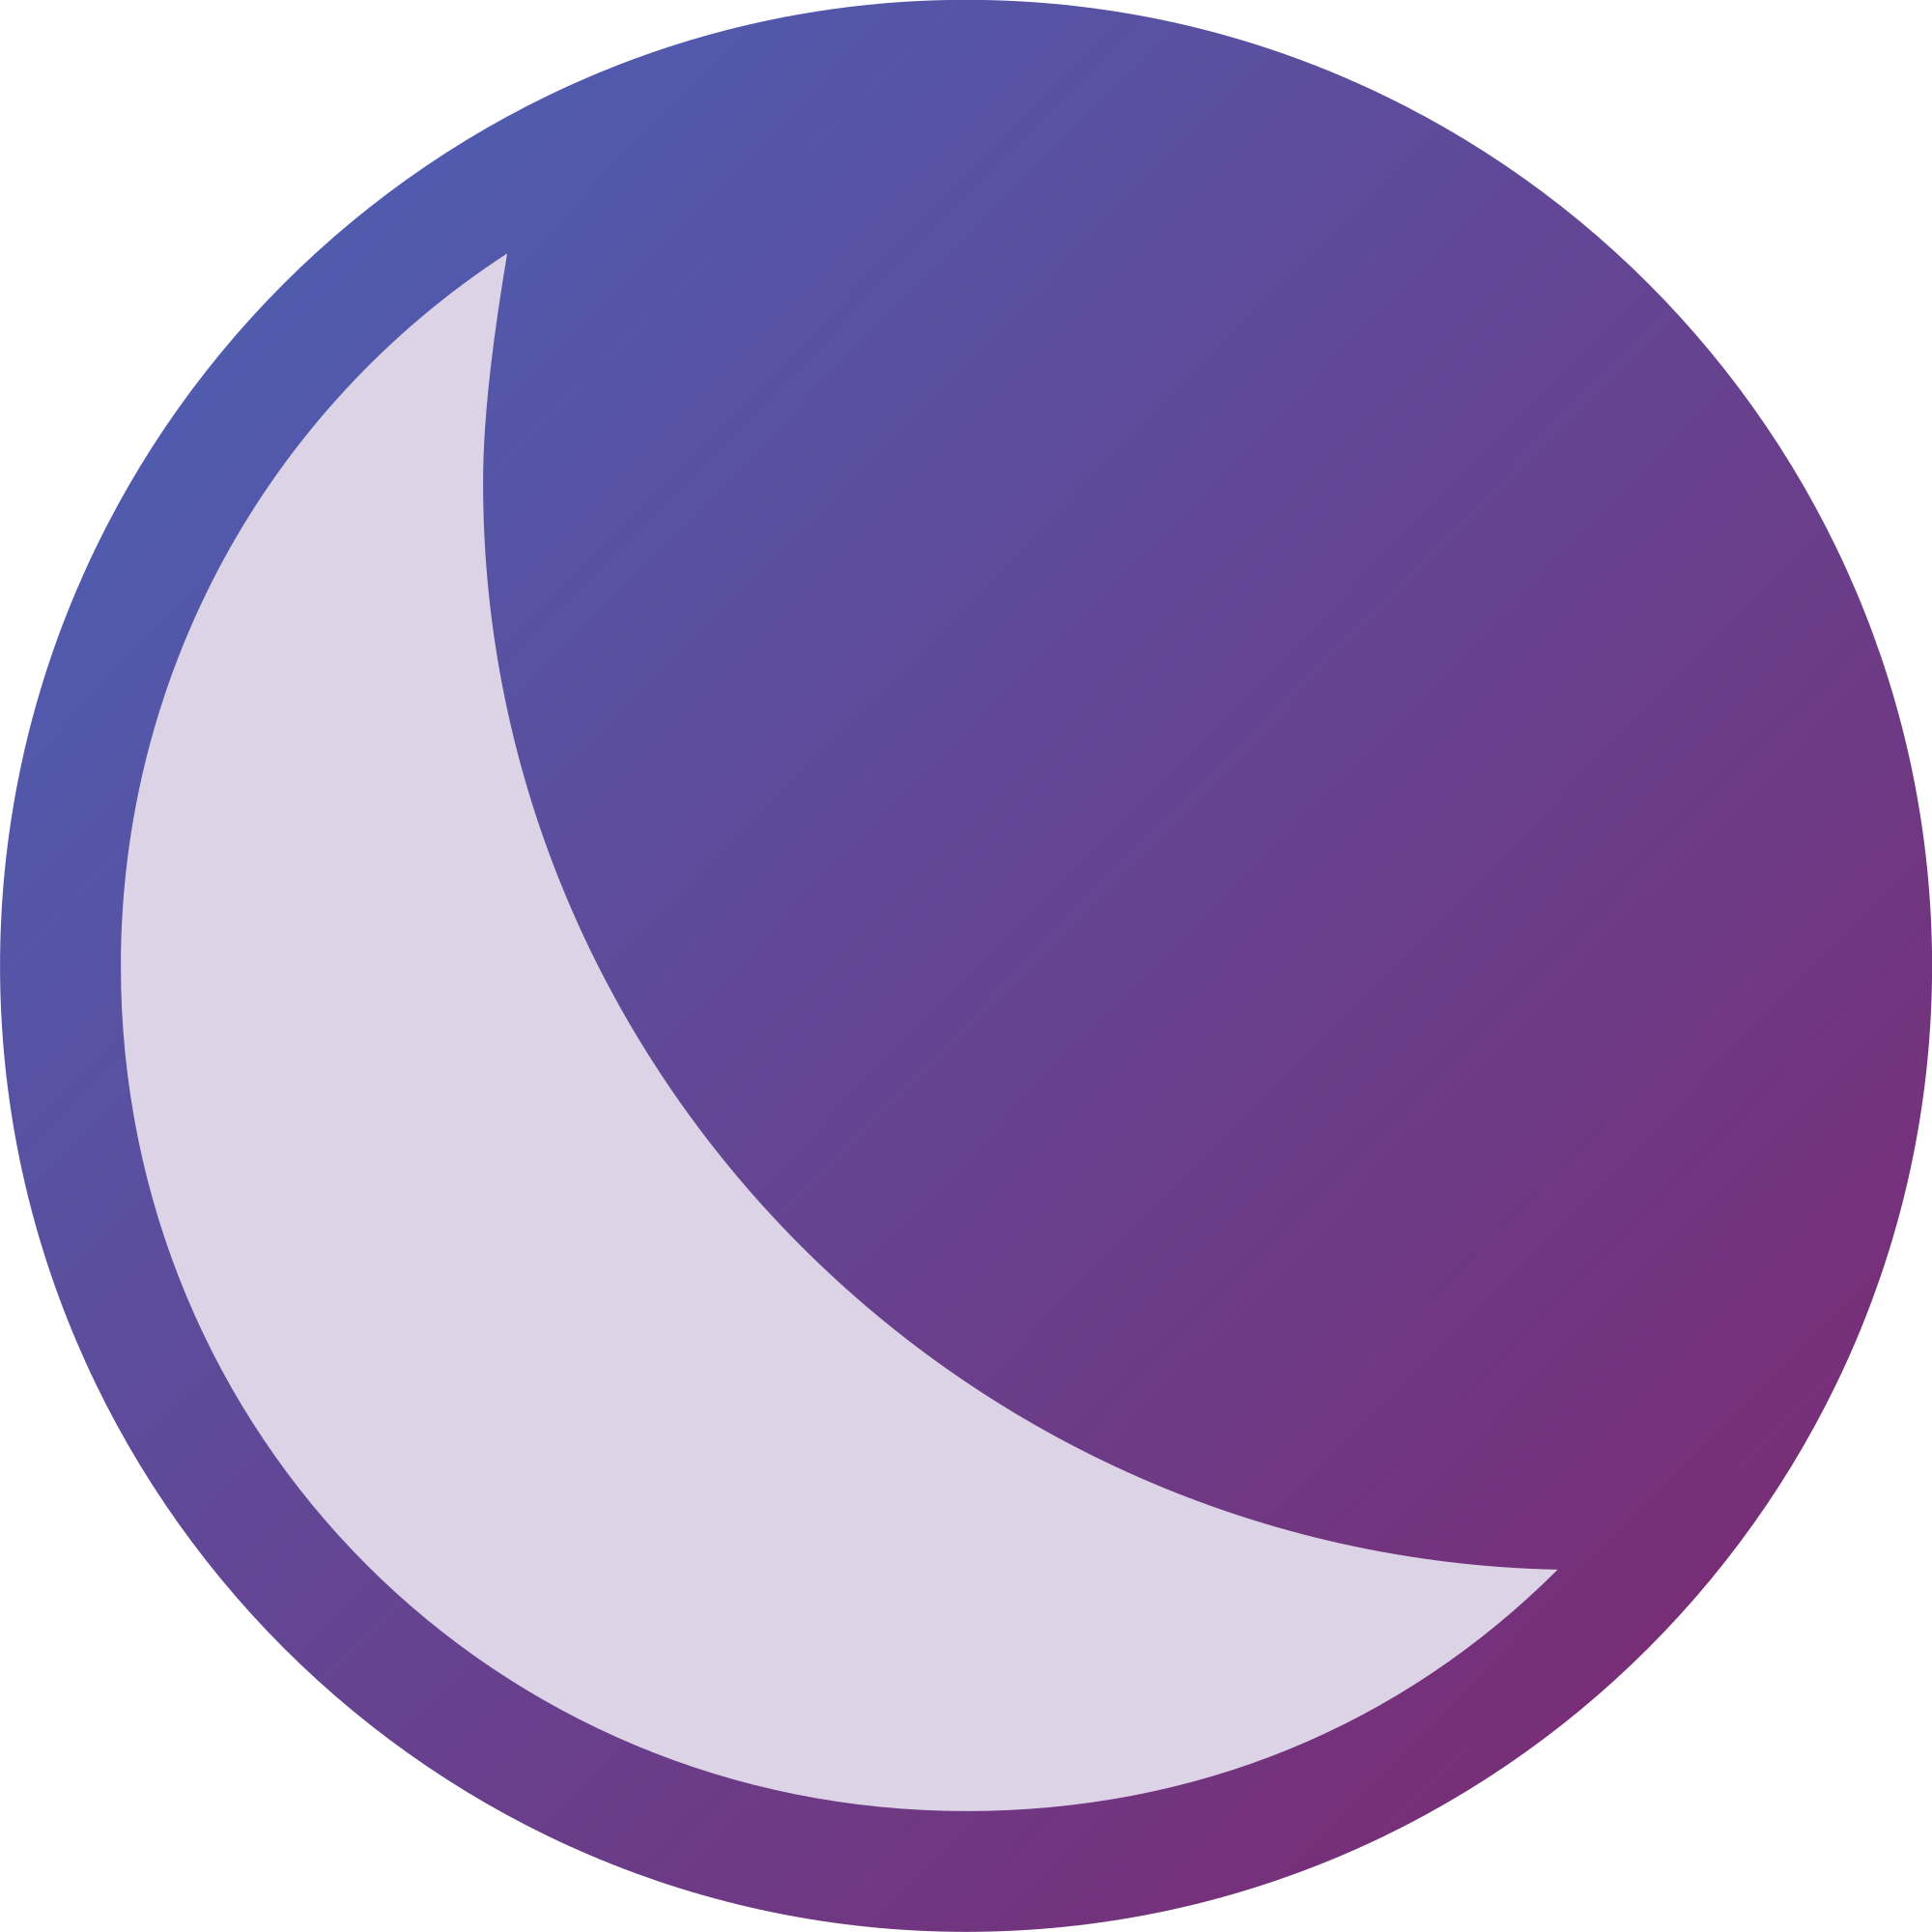 Eclipse svg #6, Download drawings